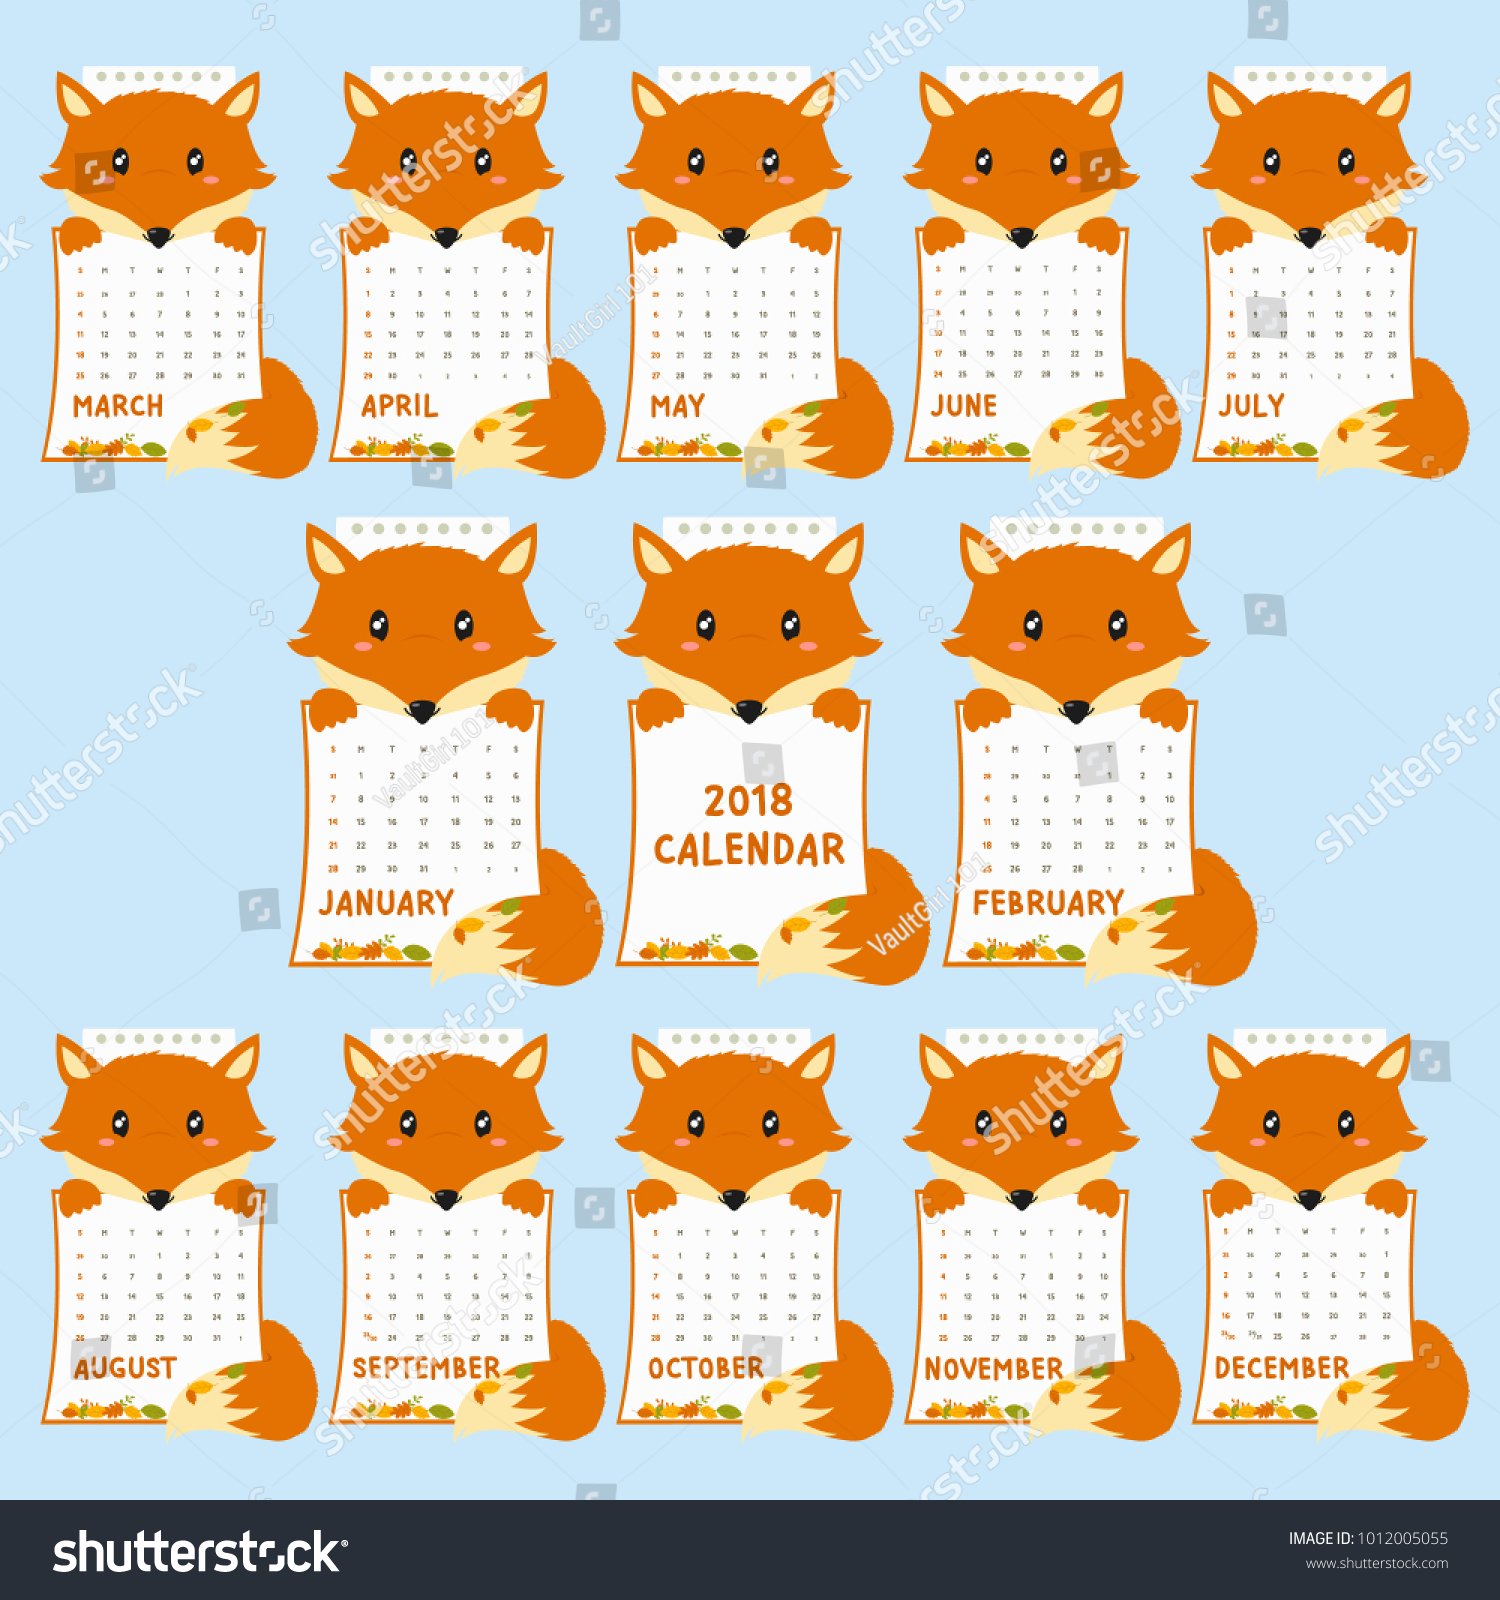 2018 Calendar Template Animal Shaped Cute Fox Holding With Autumn Leaves